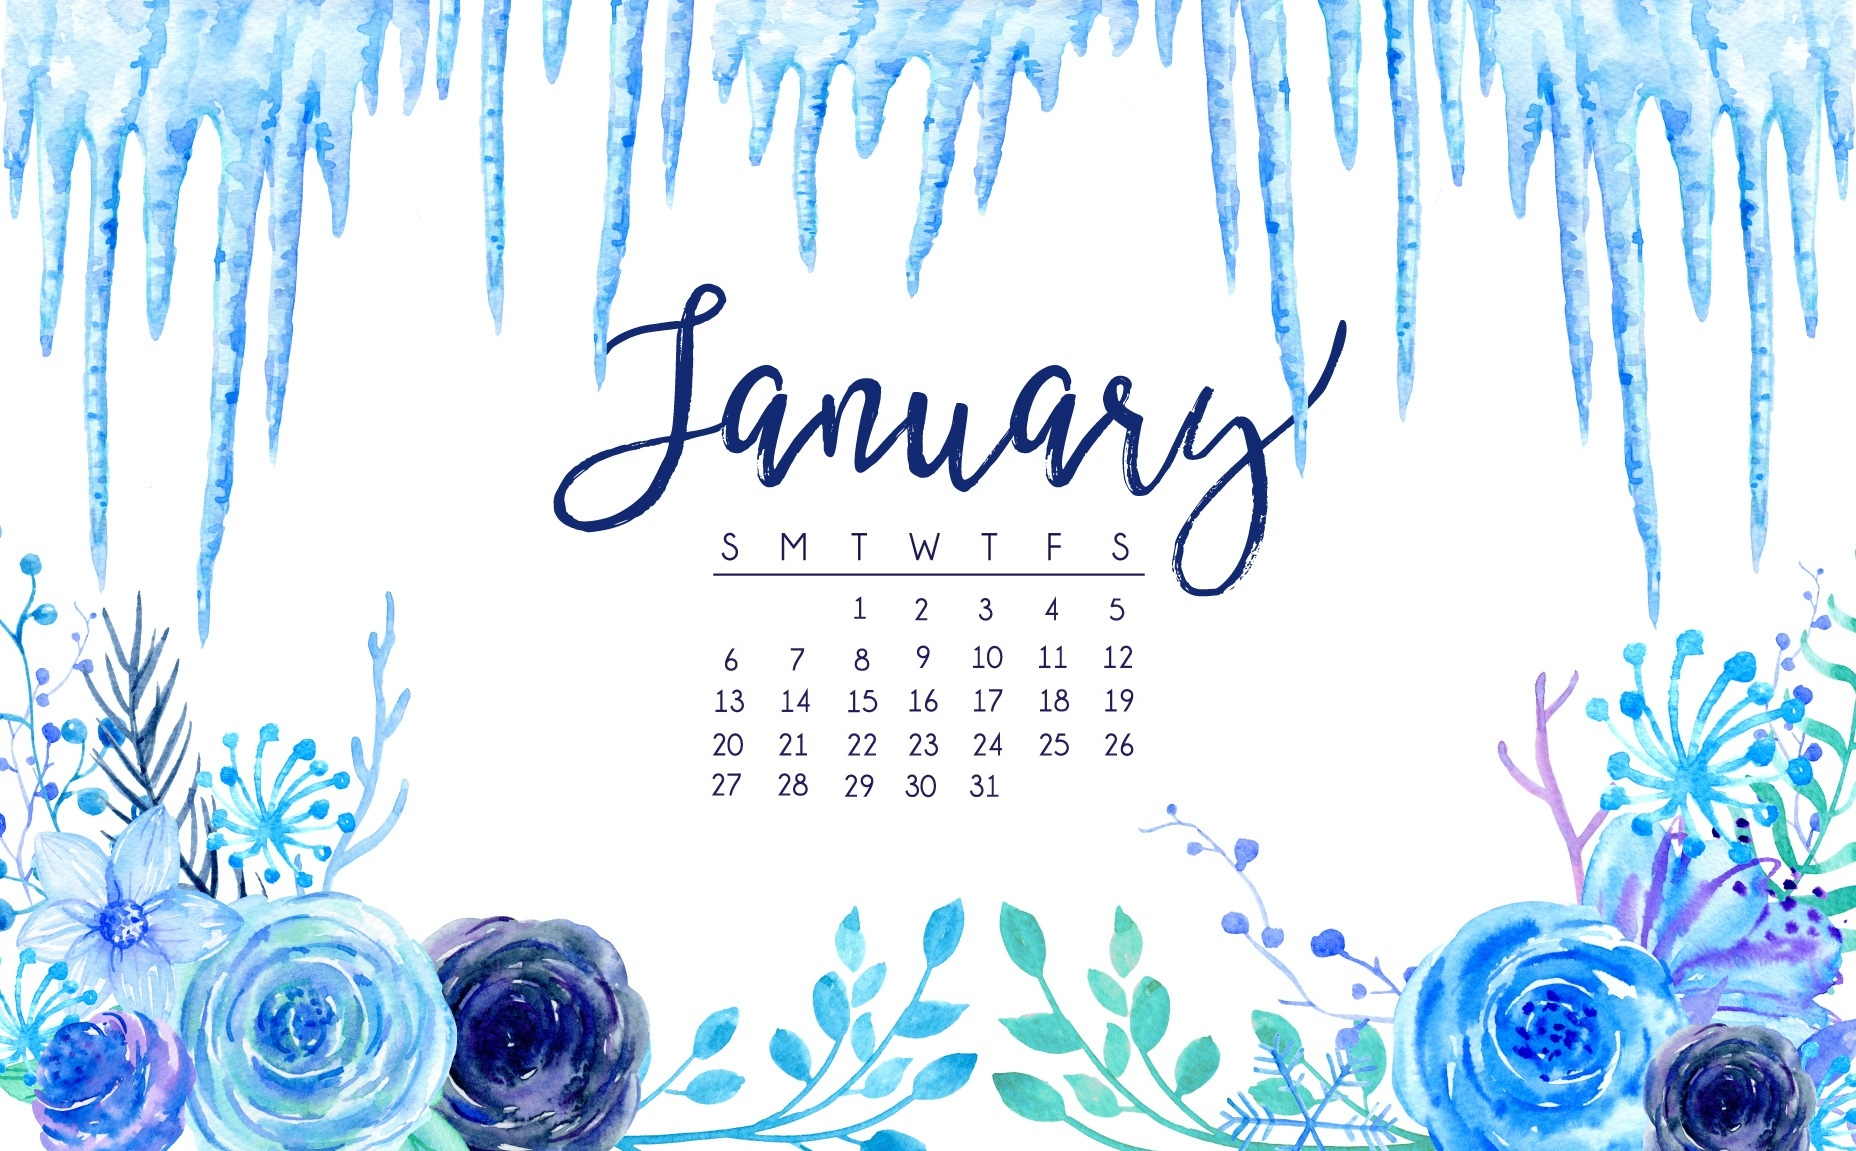 january 2019 hd calendar wallpapers latest calendar::January 2019 Desktop Calendar Wallpaper